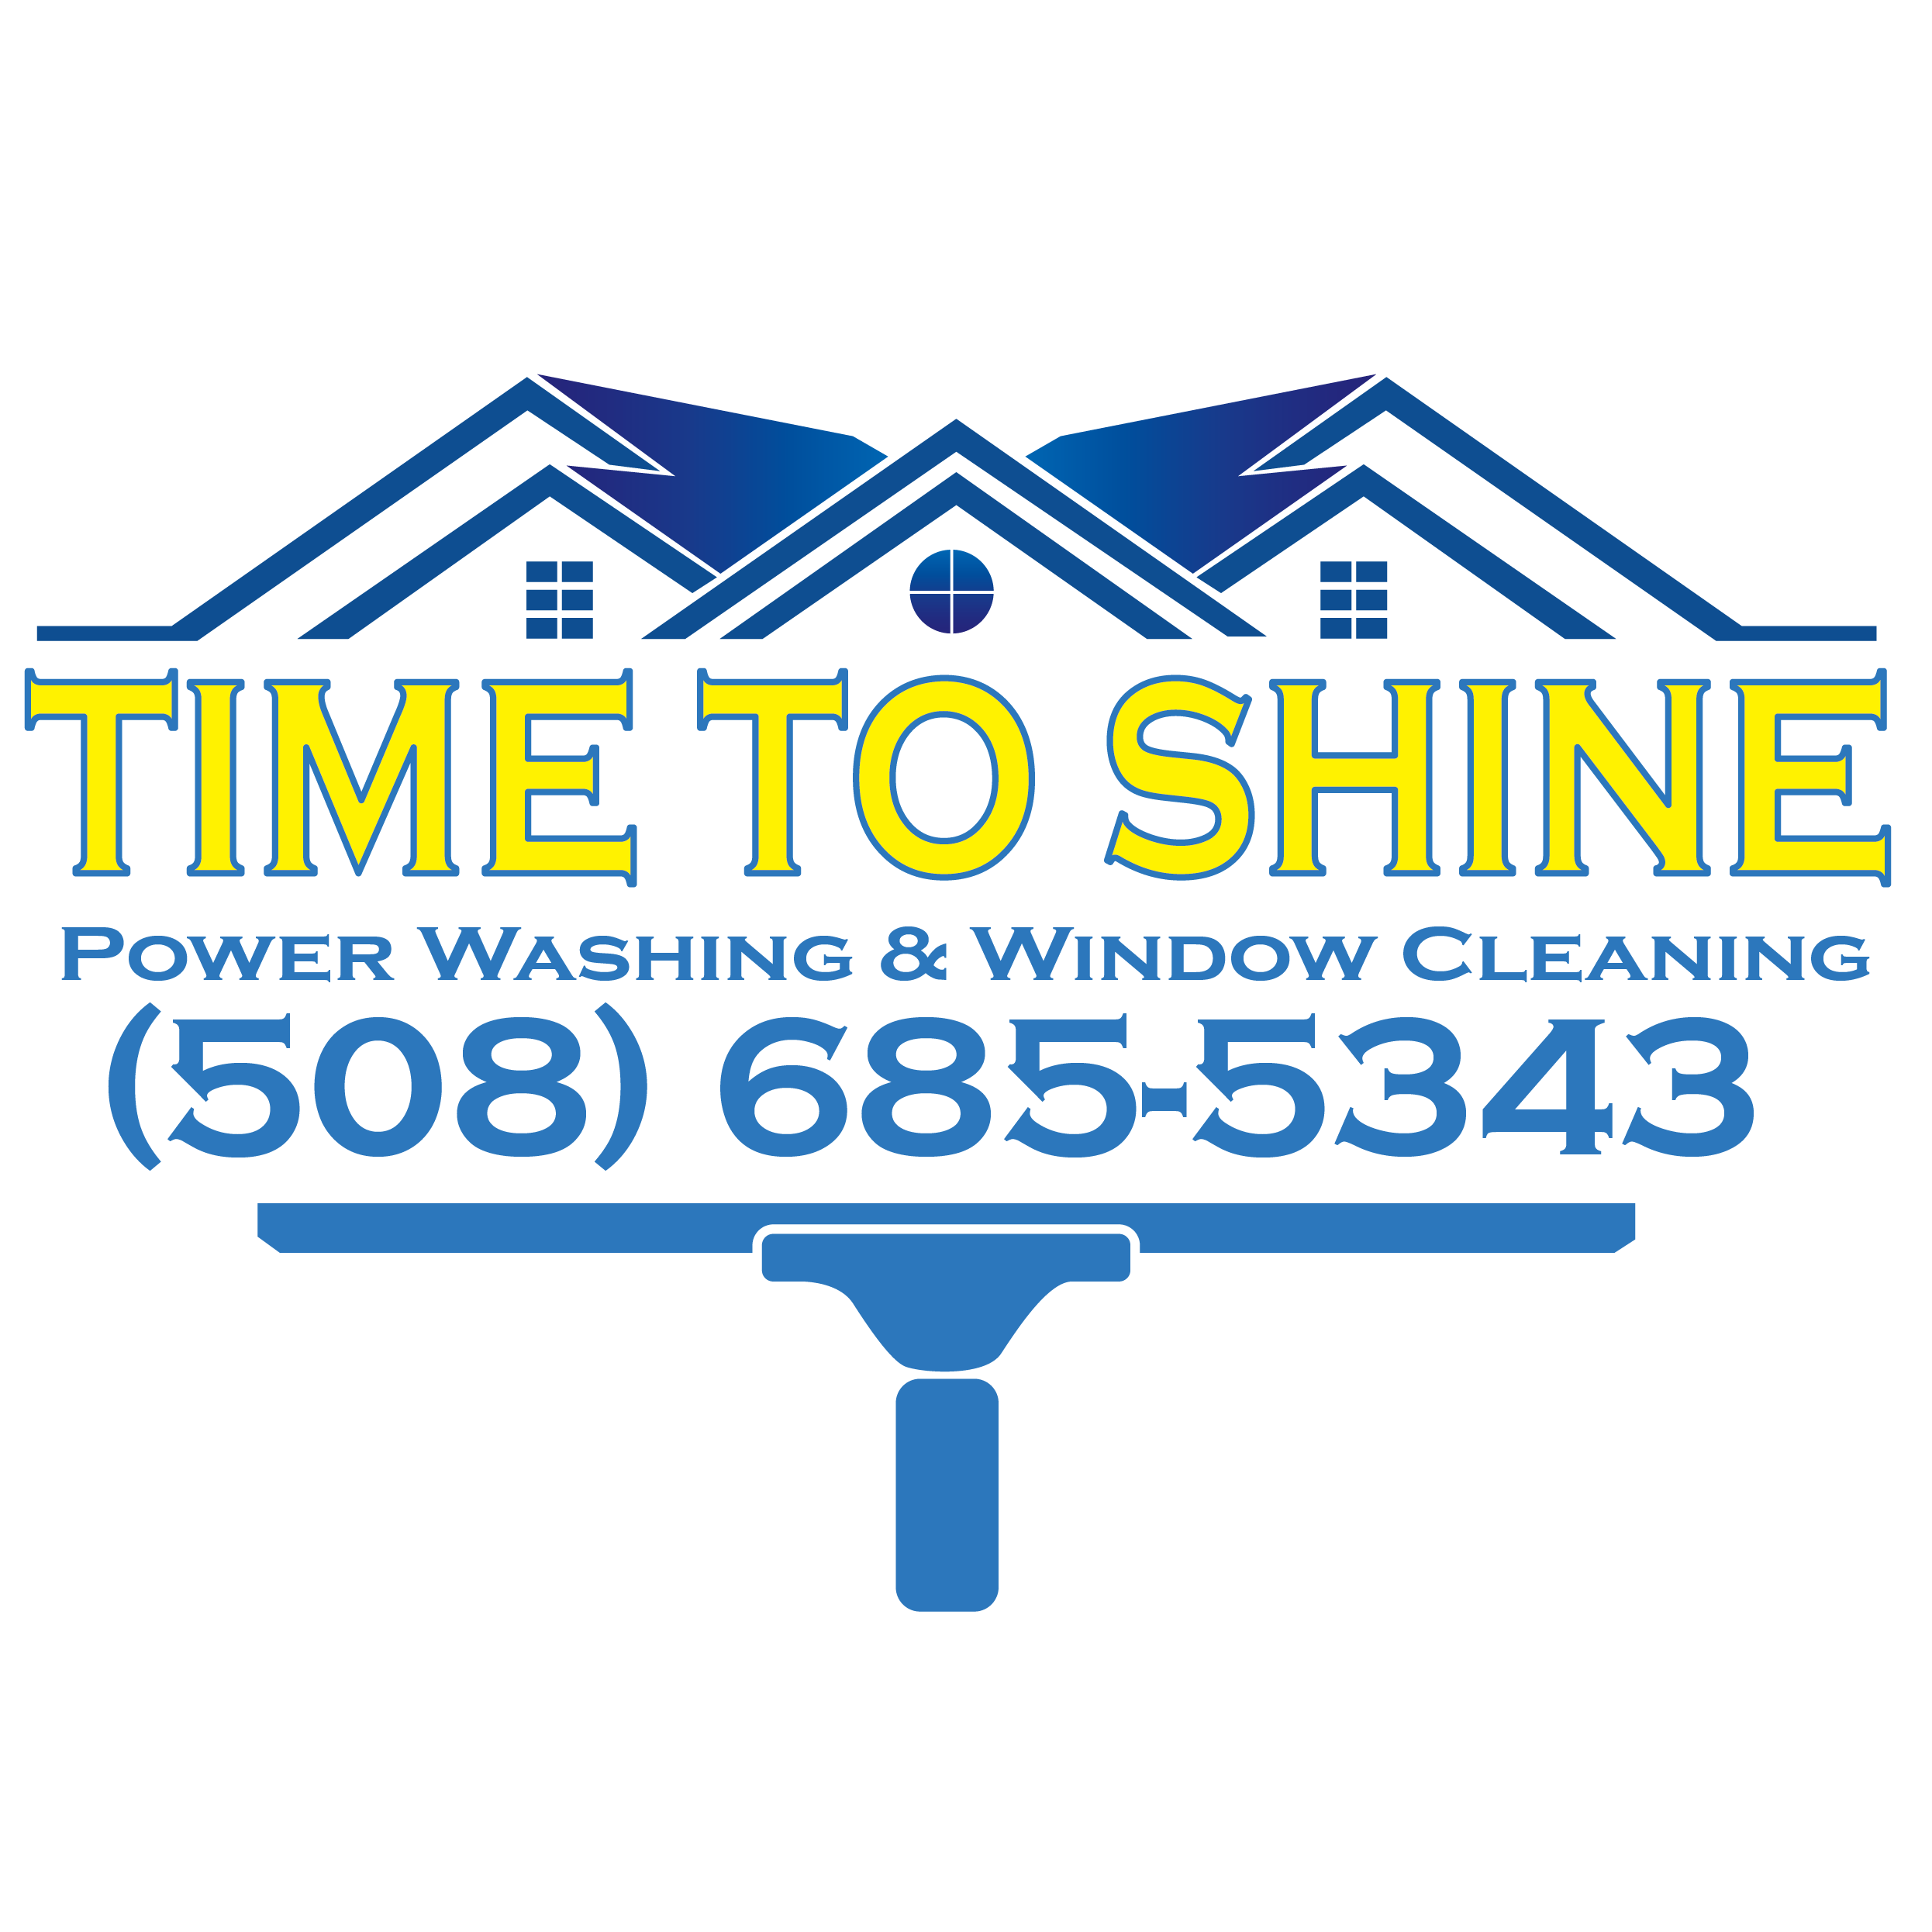 Time To Shine Power Washing & Window Cleaning